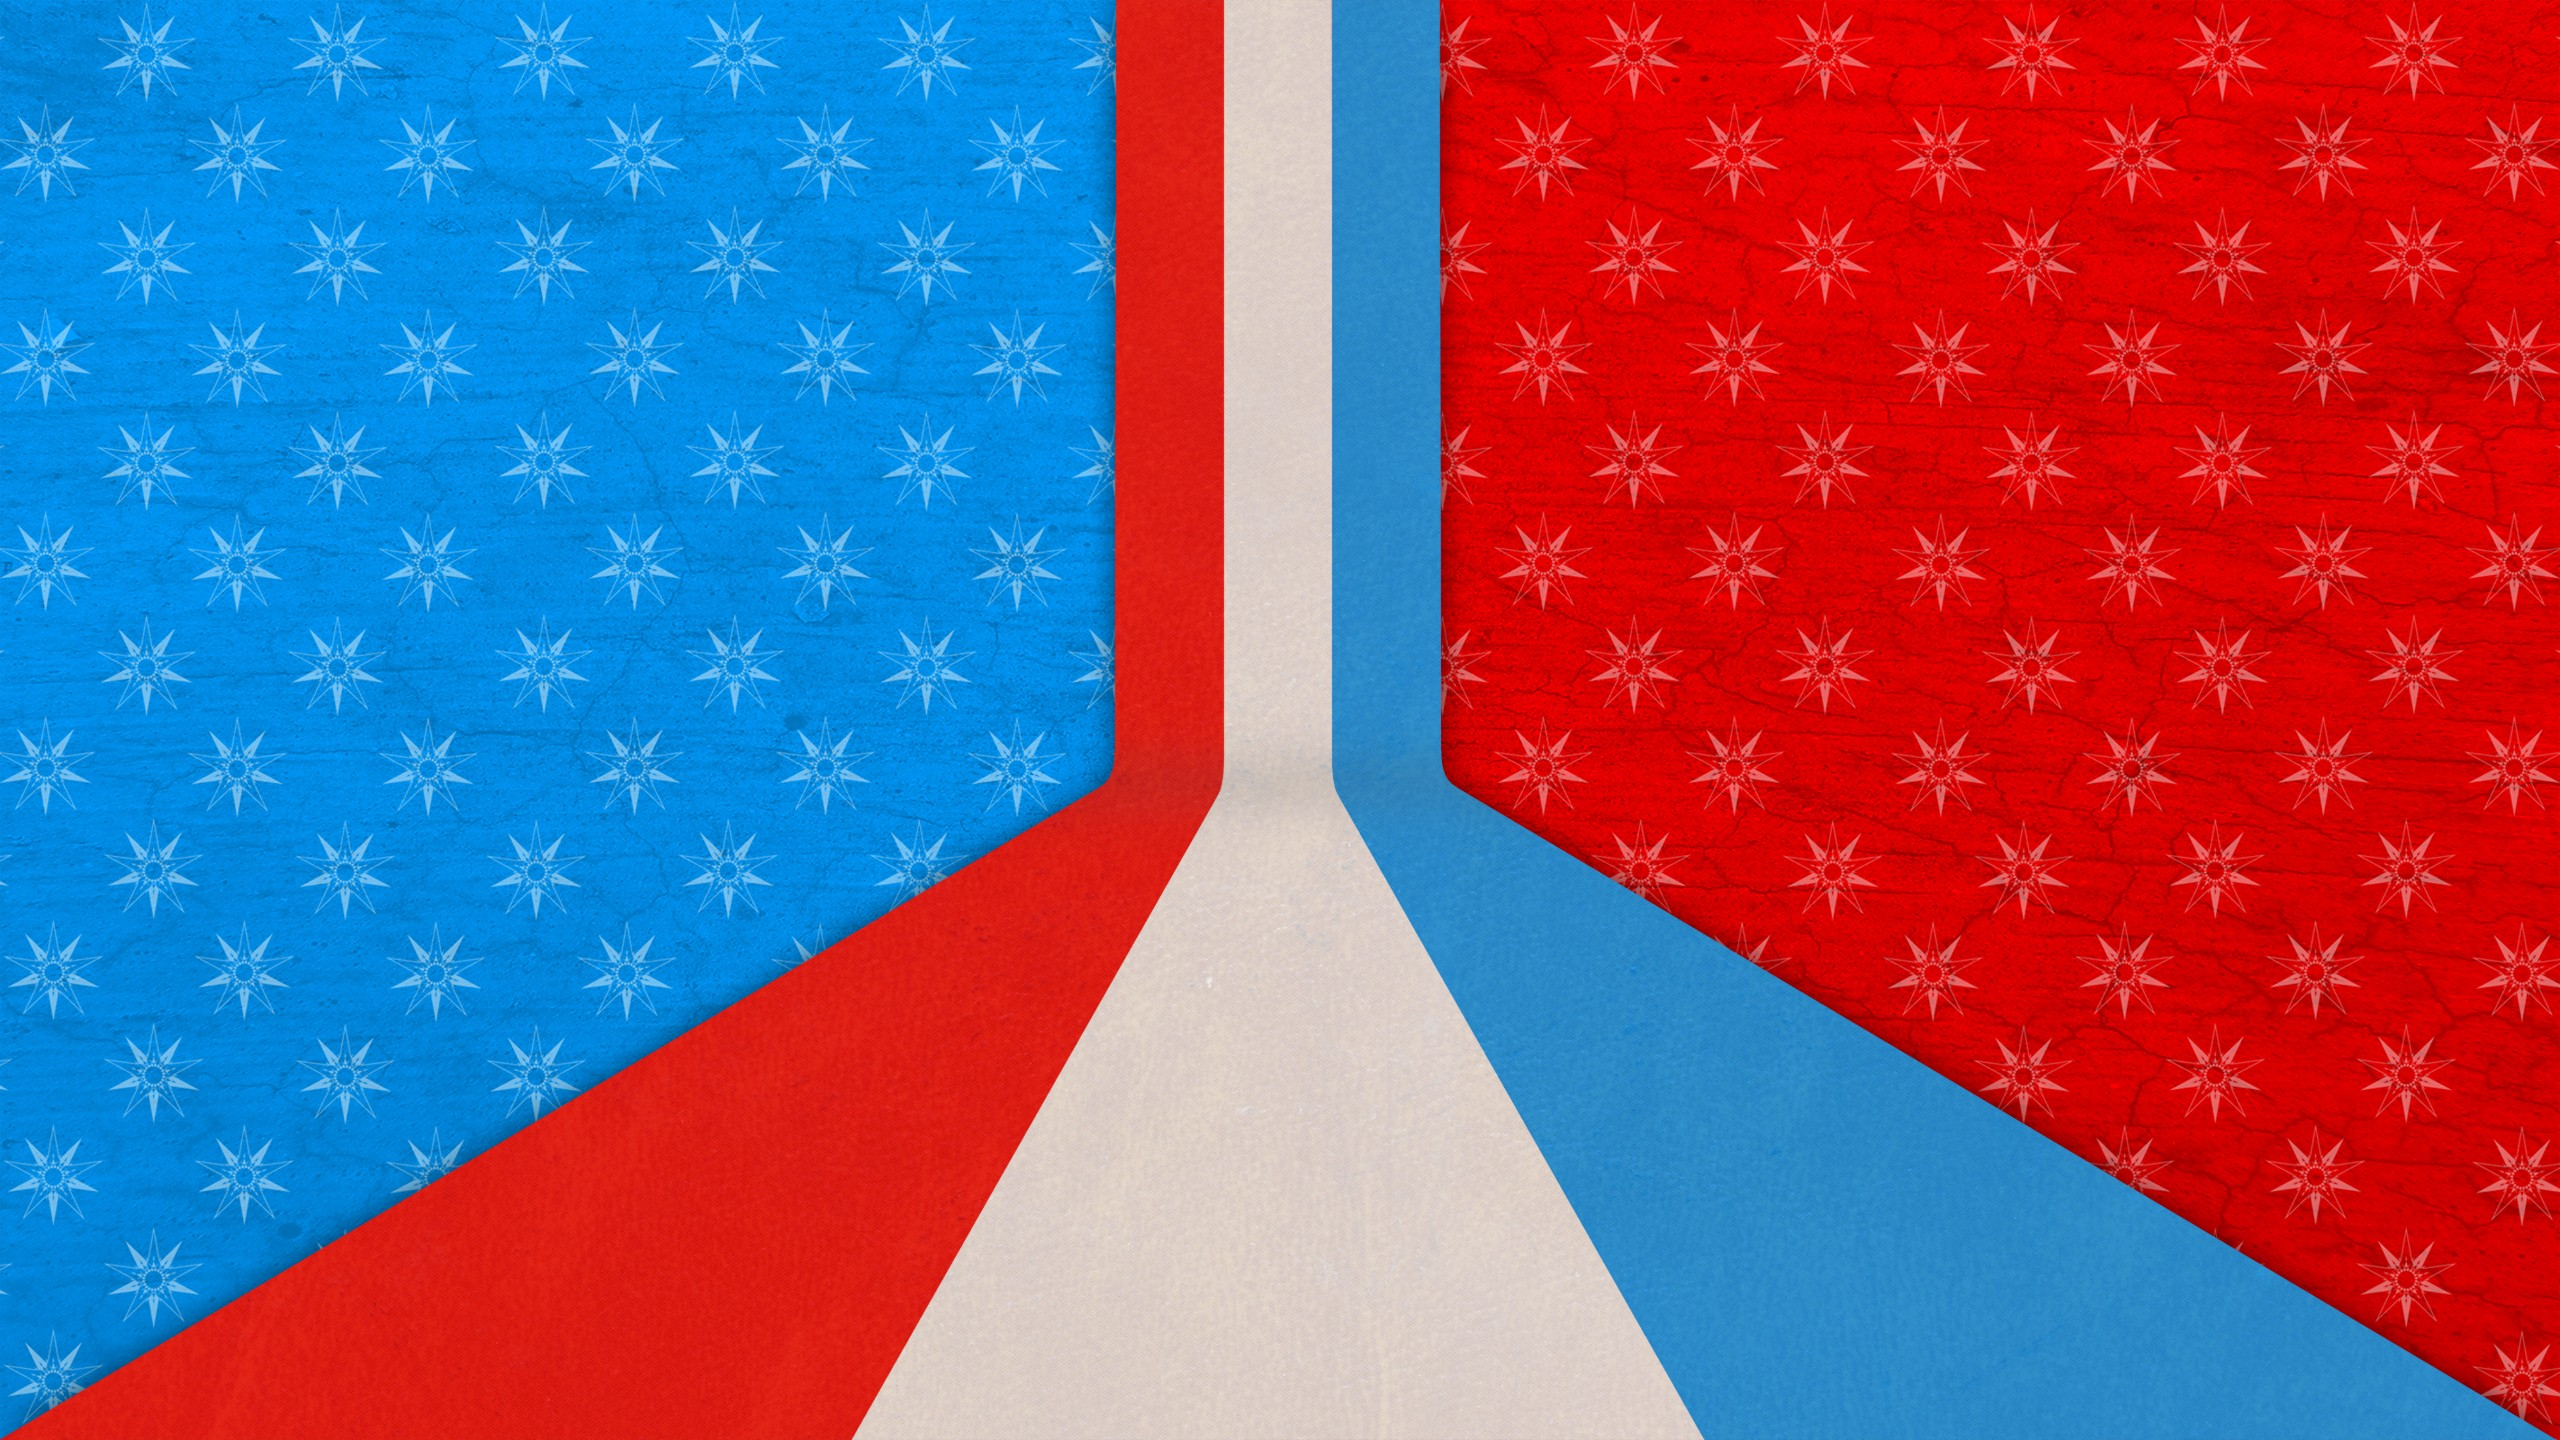 2560x1440 red white and blue abstract desktop pc and mac